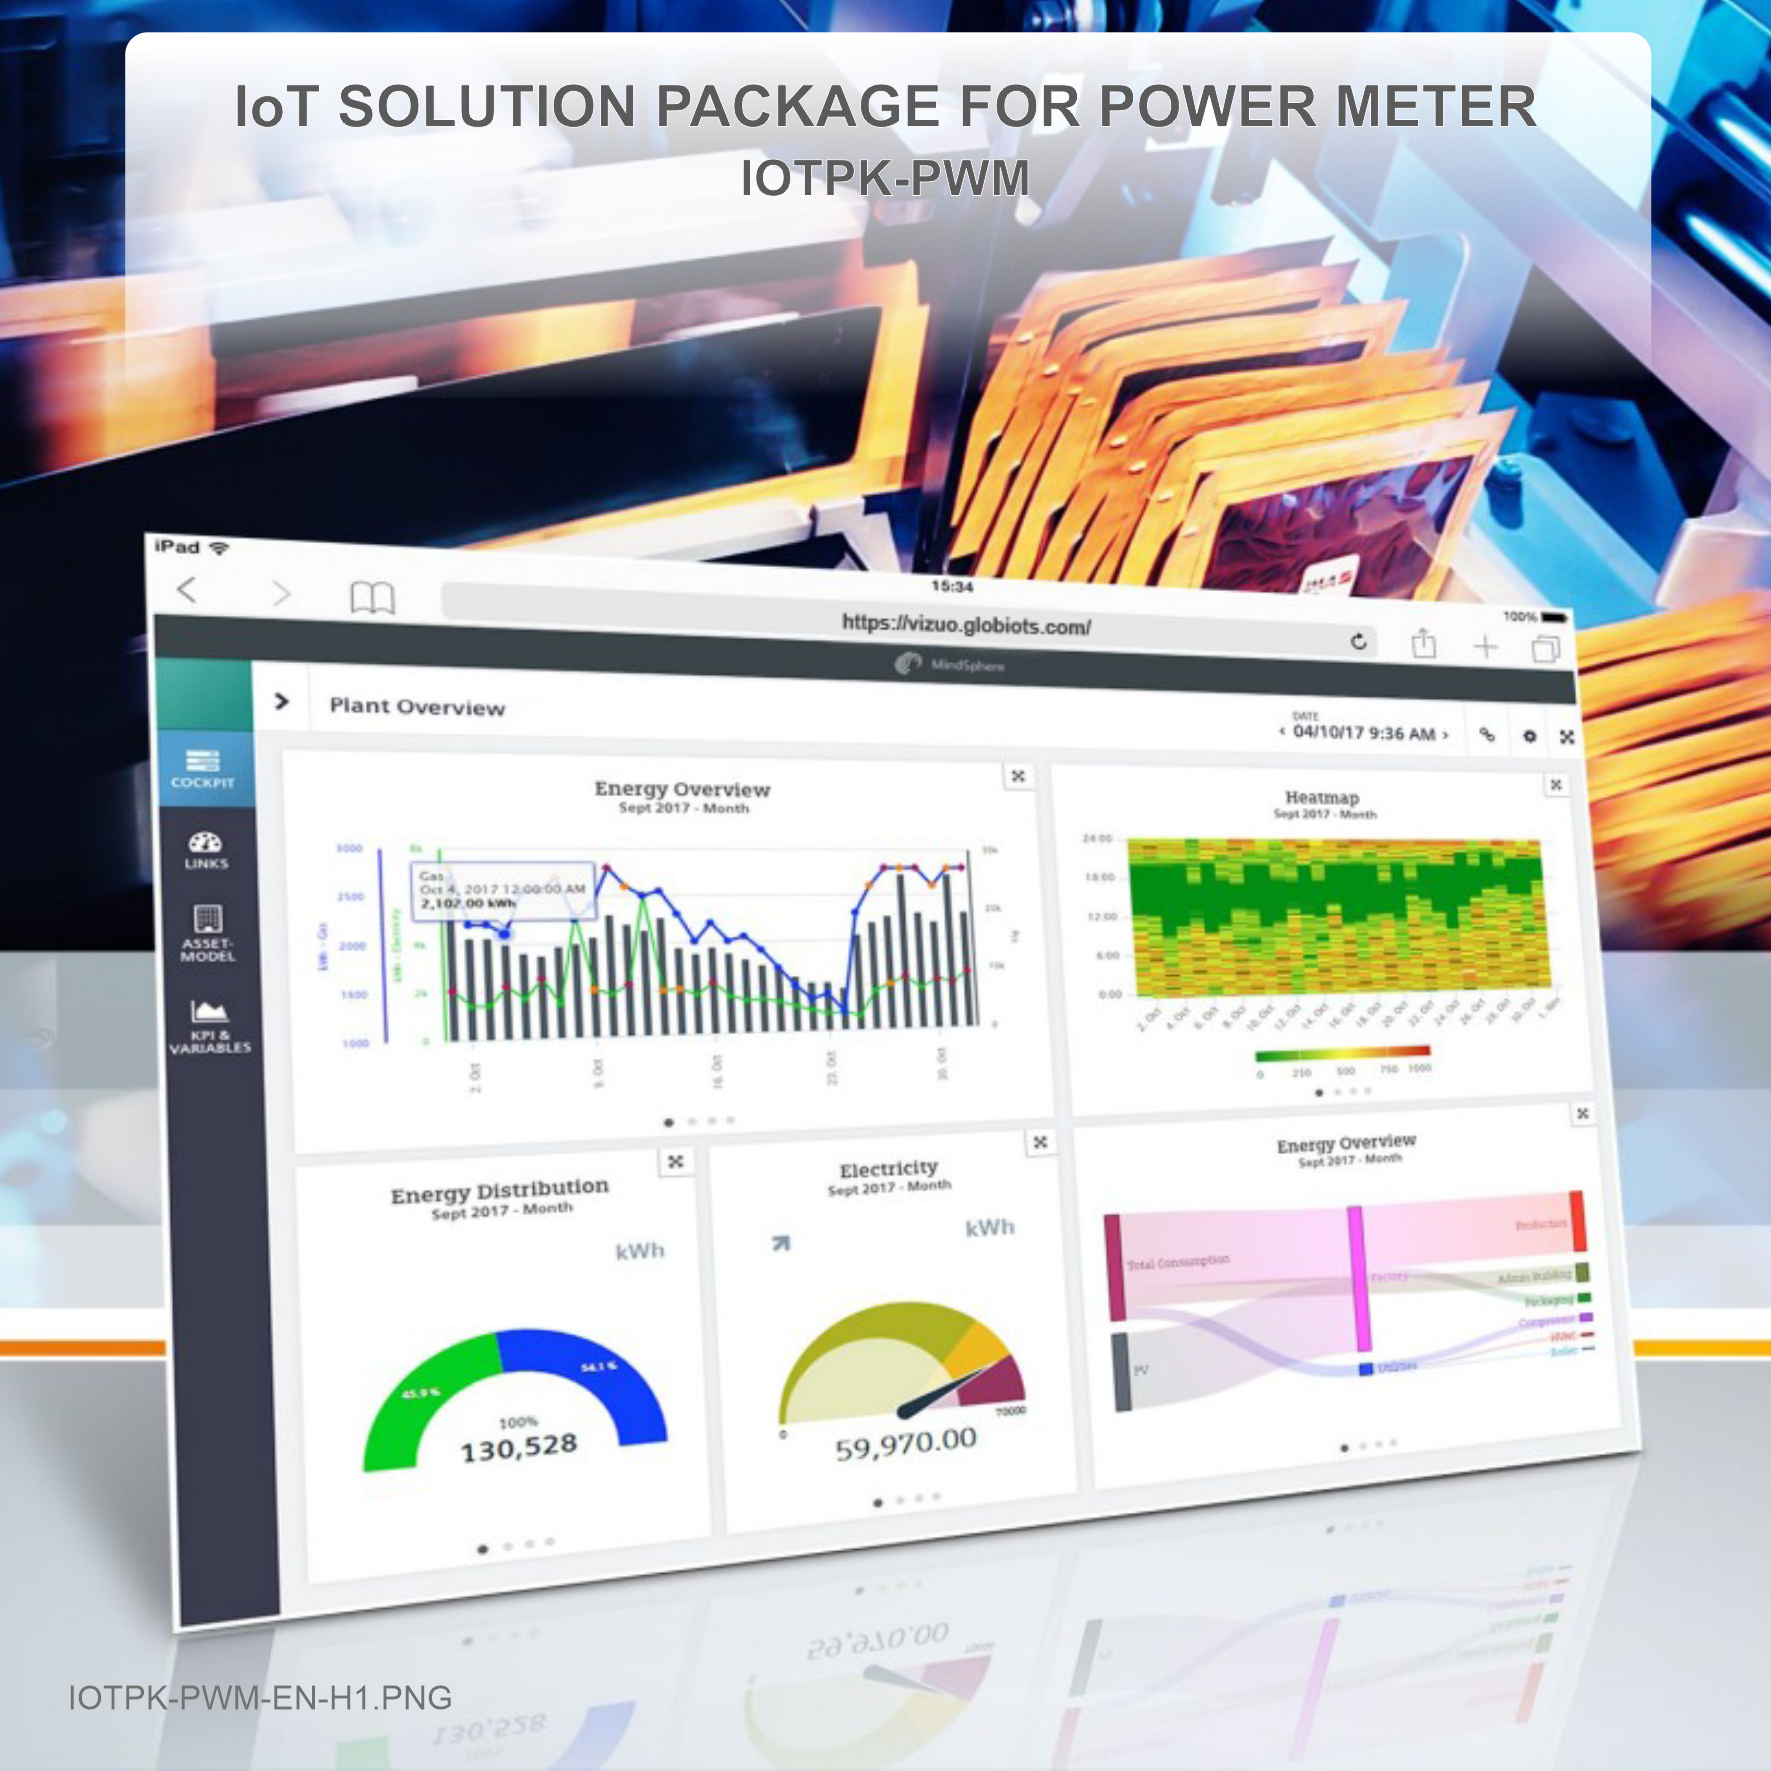 IoT PACKAGE FOR POWER METER